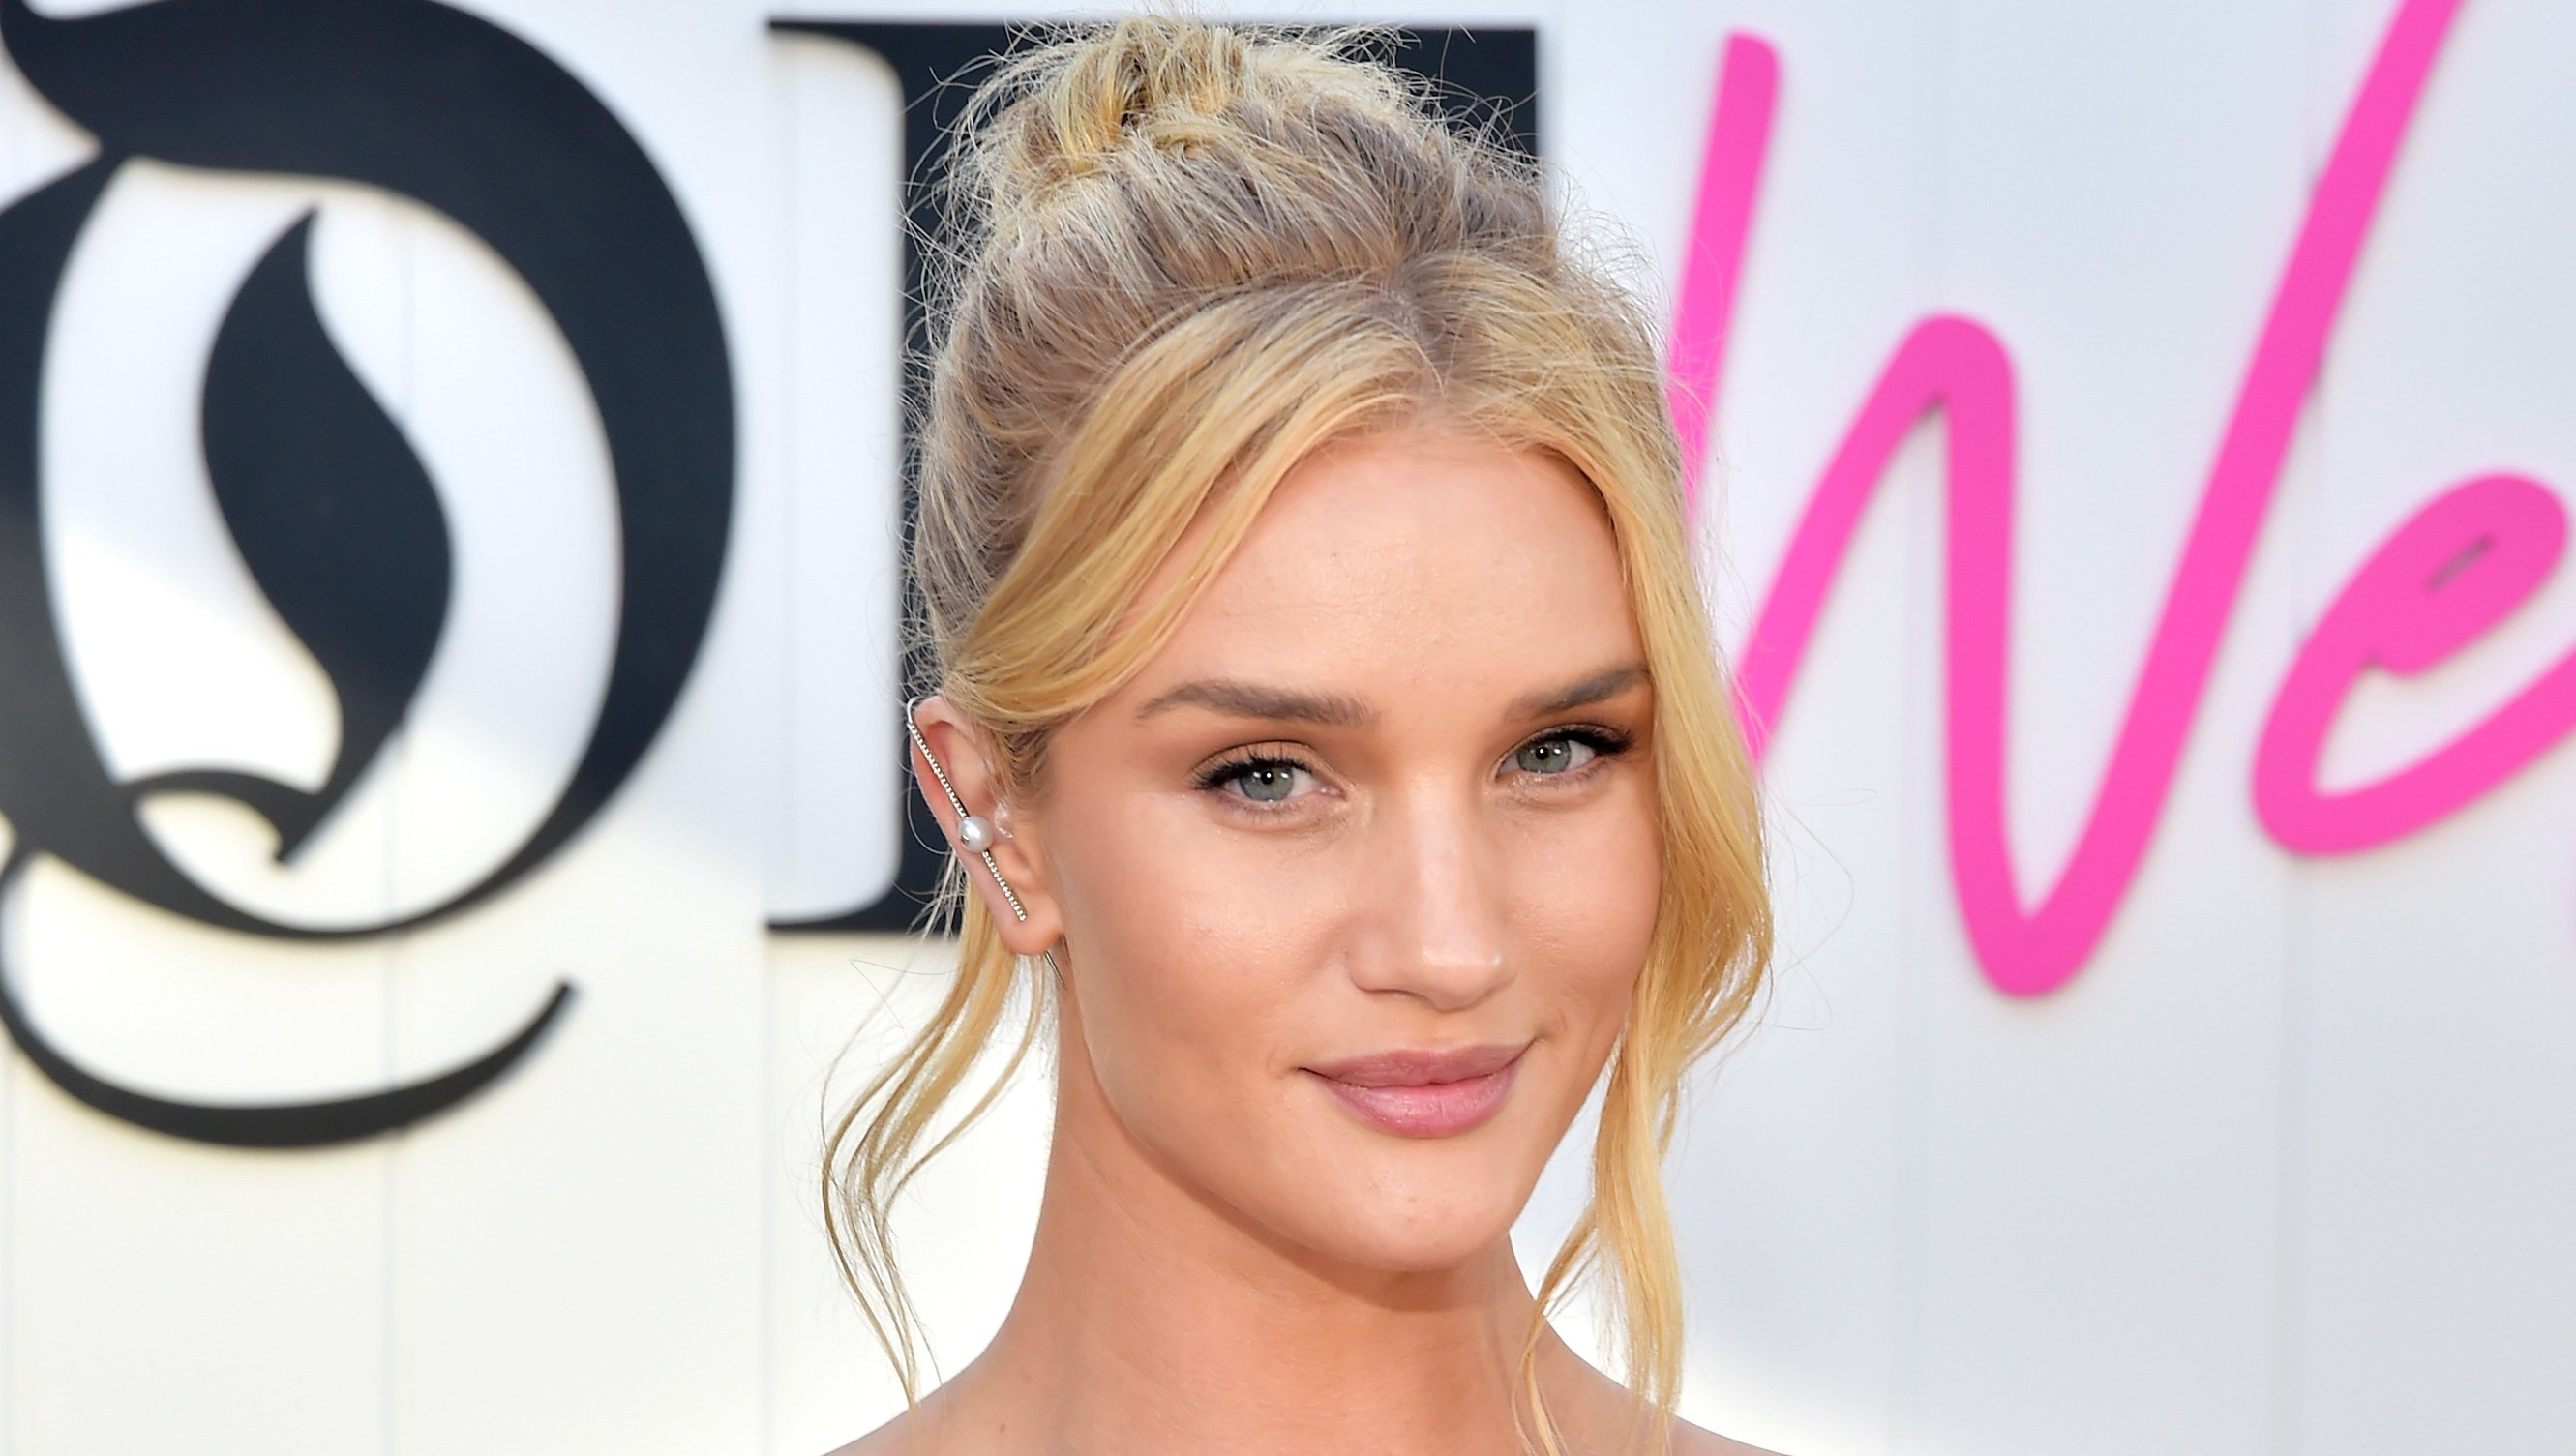 Rosie Huntington-Whiteley Foundation